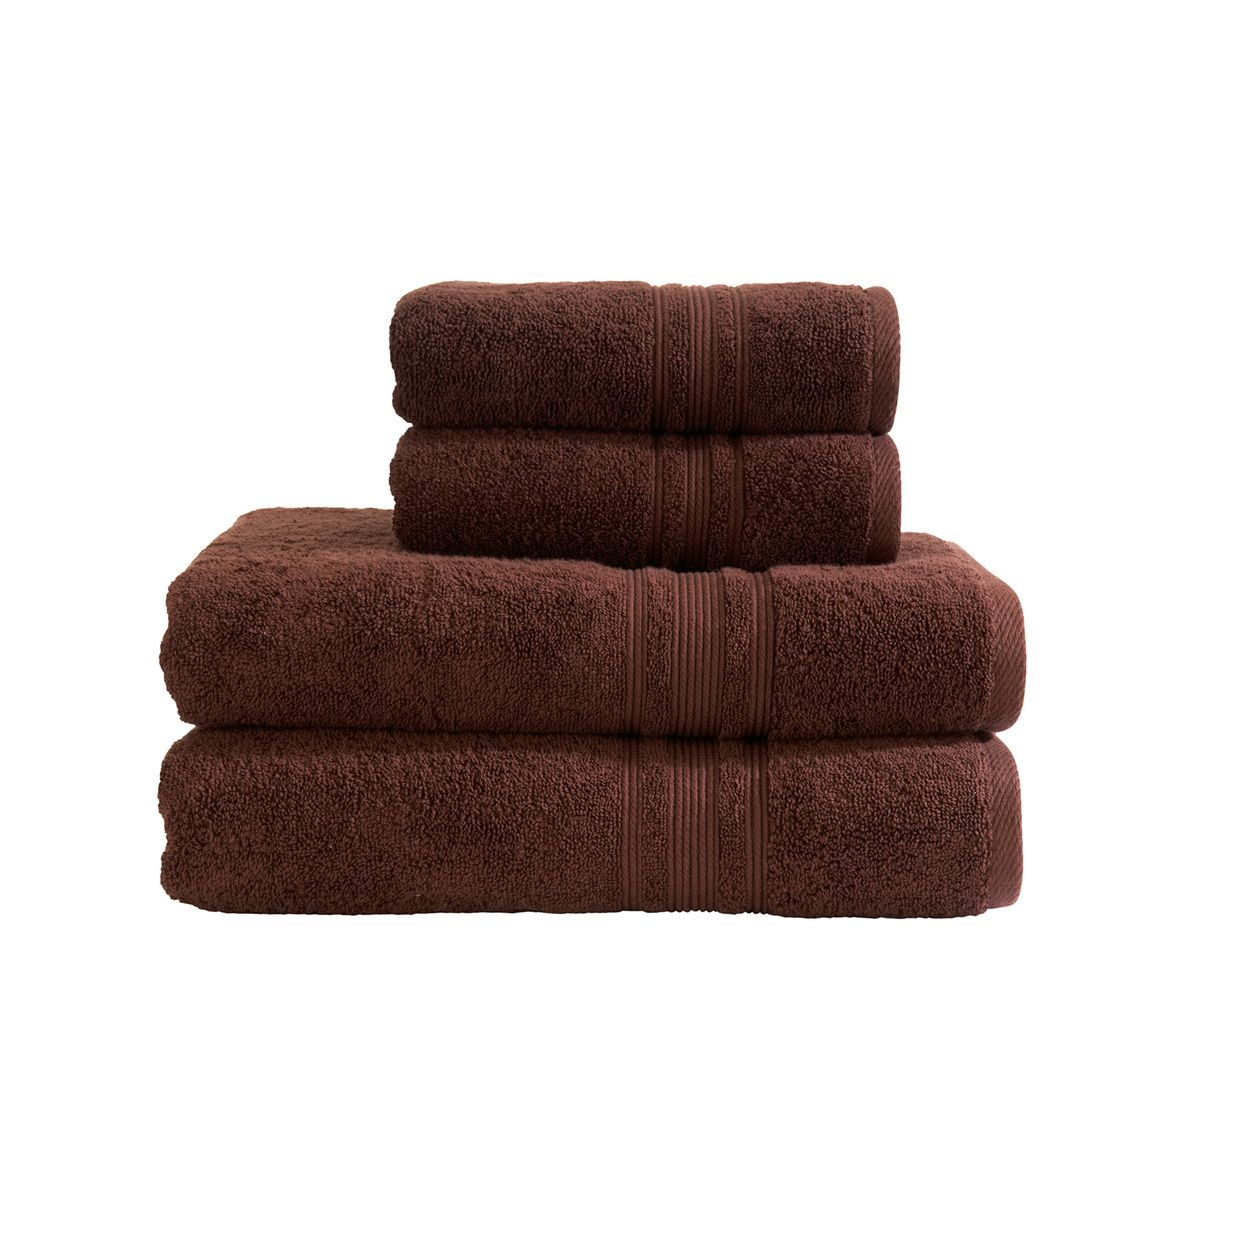 Charisma Bath Towels Glamorous Towels Costco Uk  Charisma Hygrocotton 4 Piece Hand And Bath Towel Inspiration Design